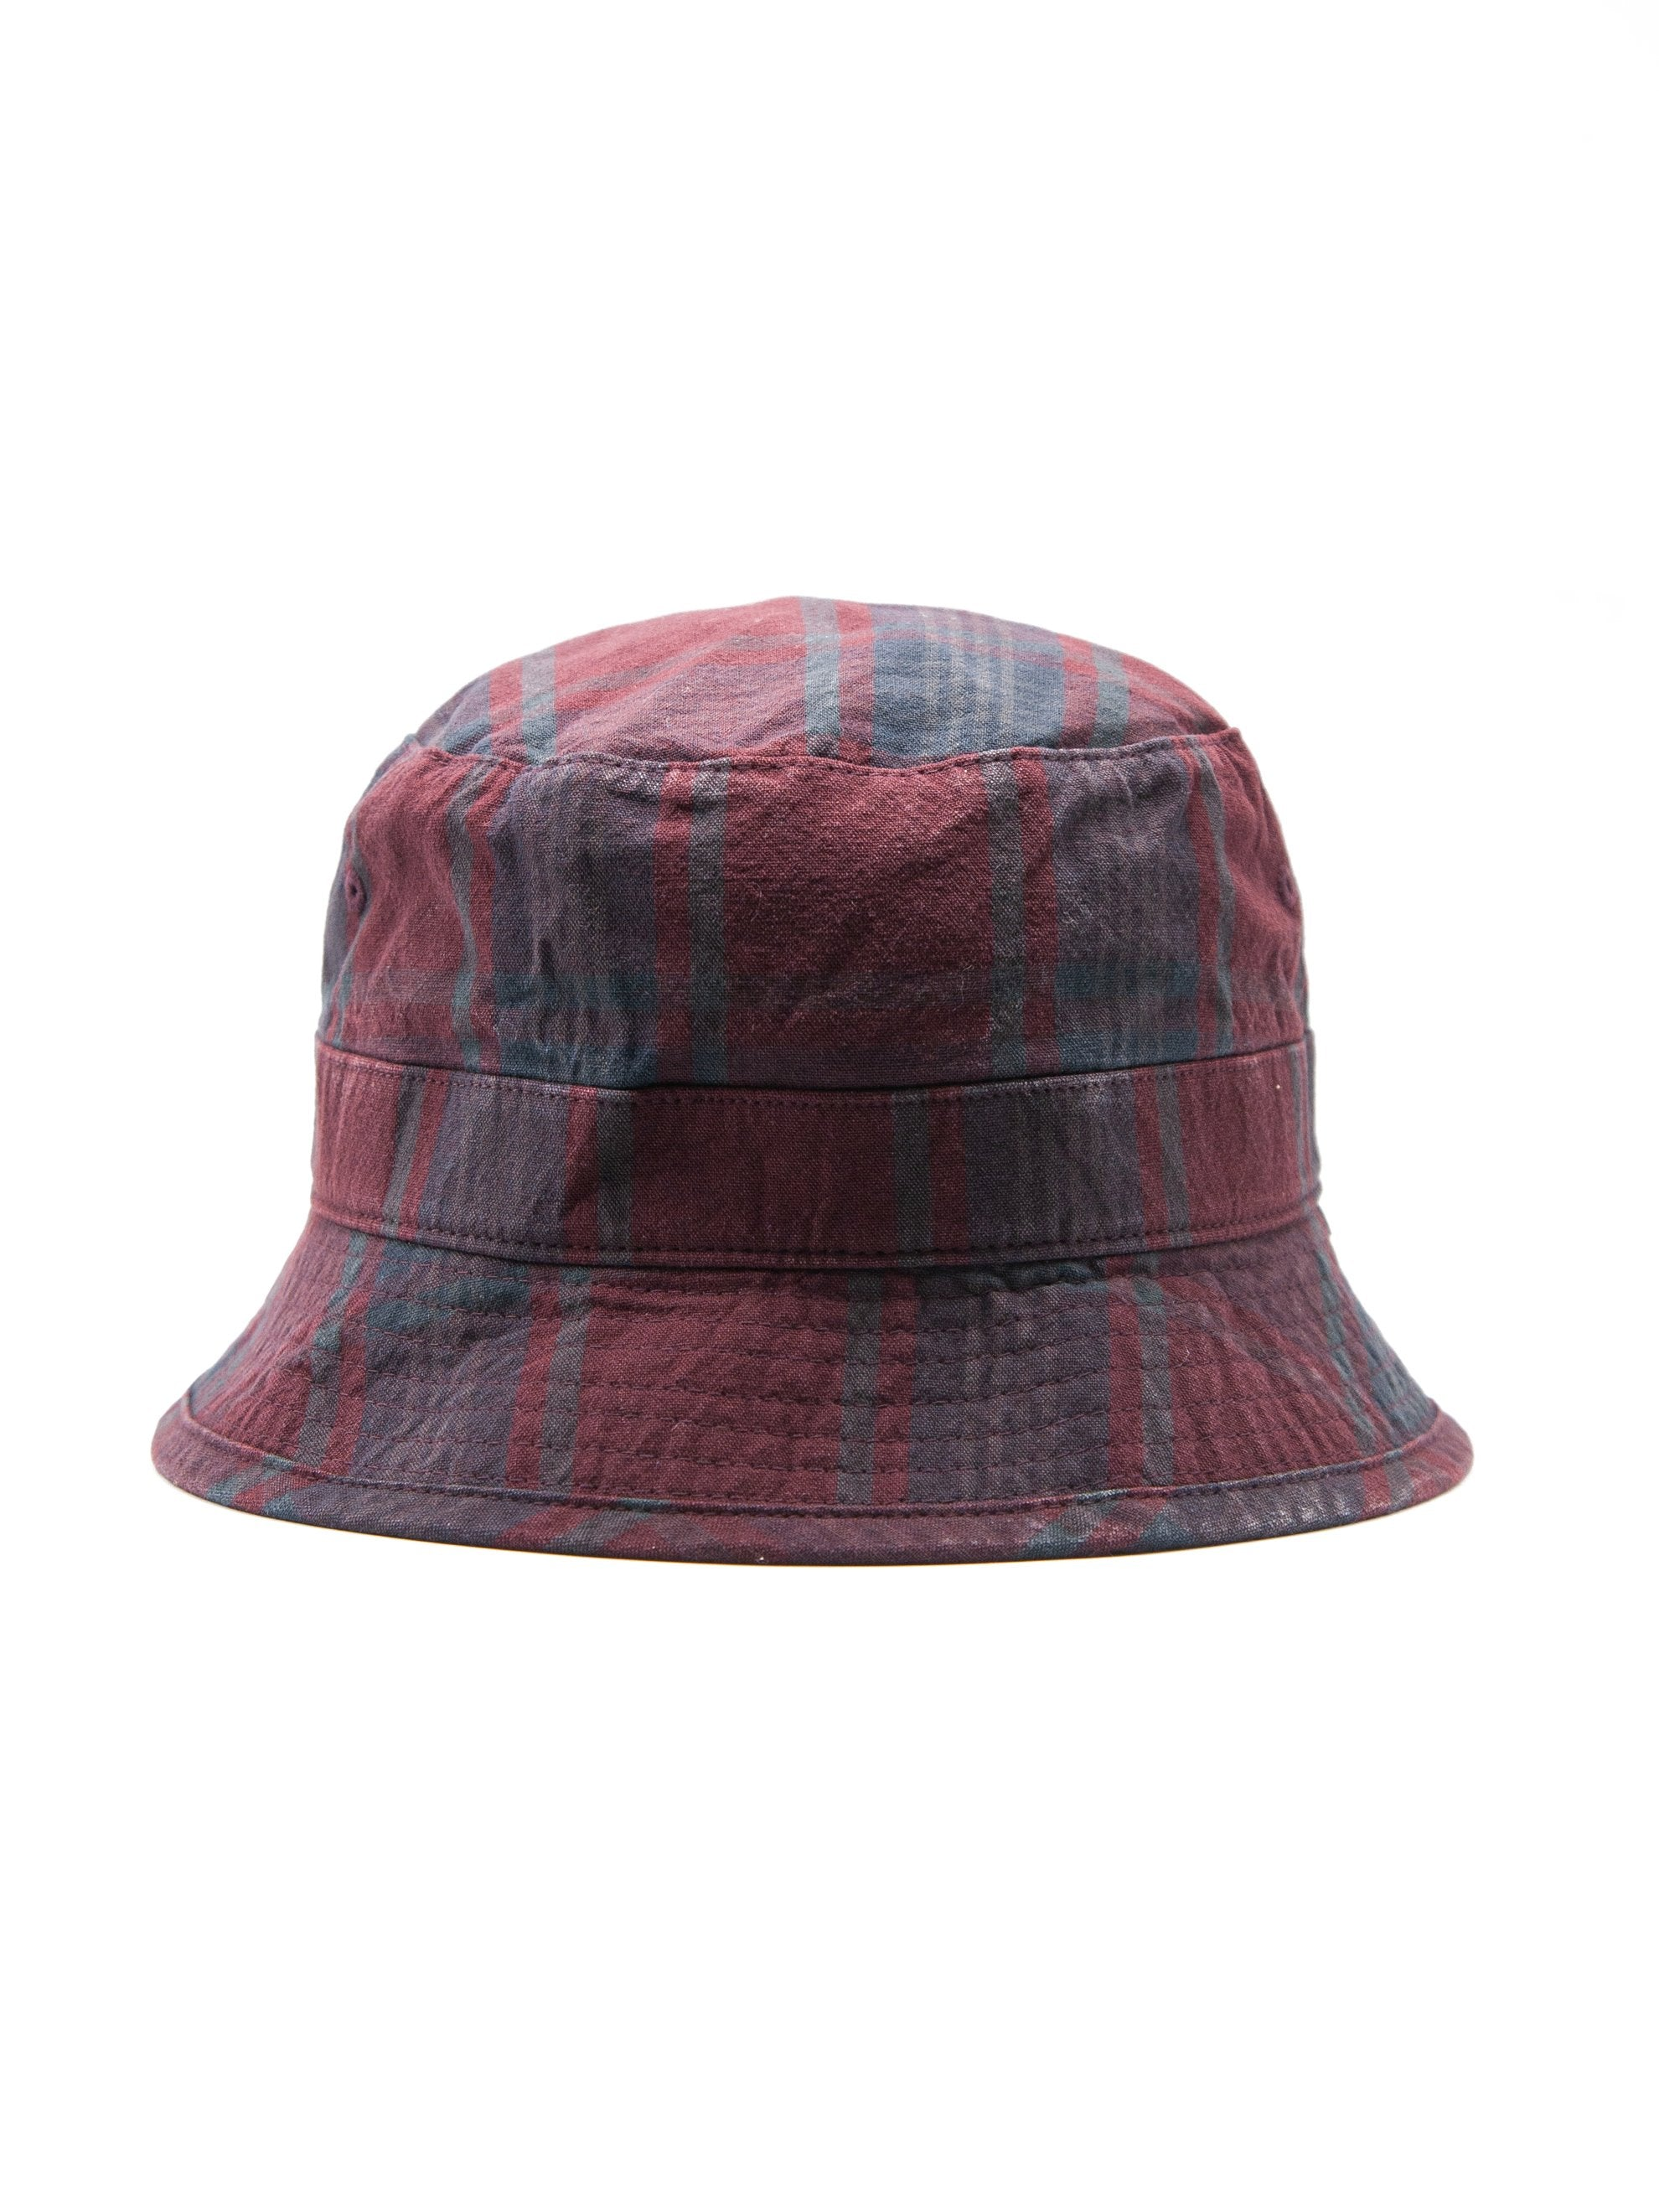 Bucket 01 / Hat Cotton Poplin Textile